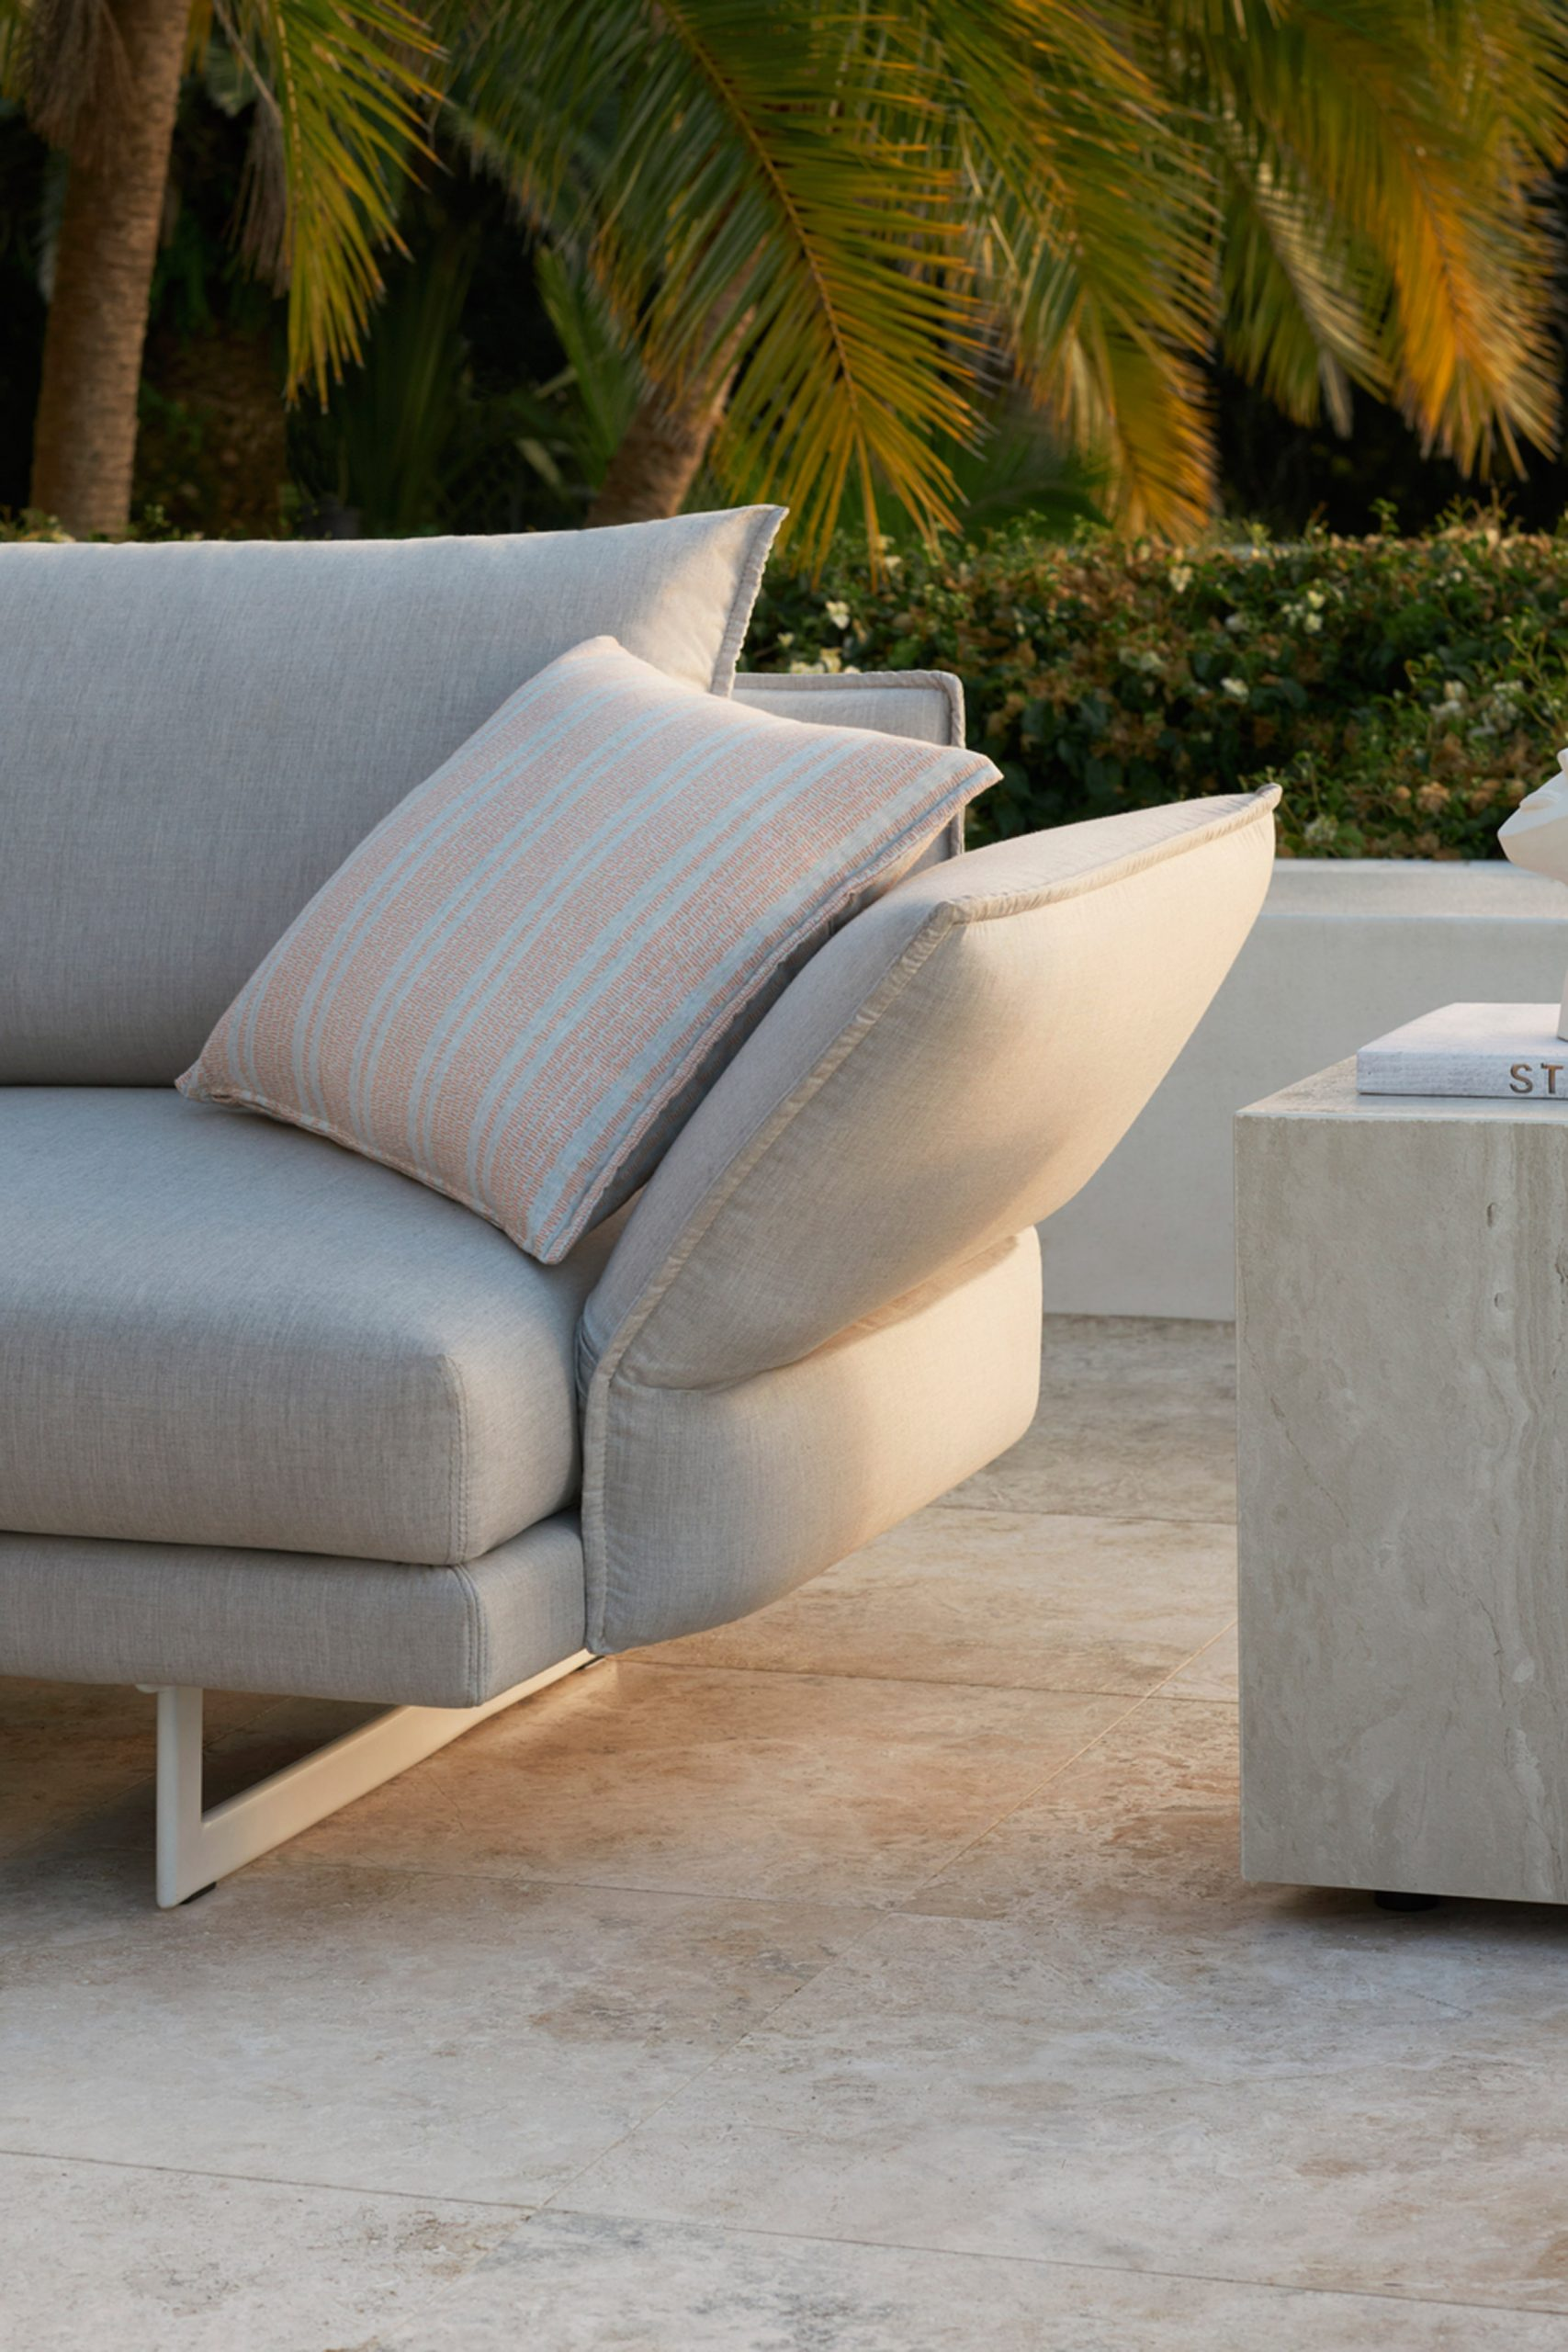 Zaza outdoor sofa by Charles Wilson for King Living